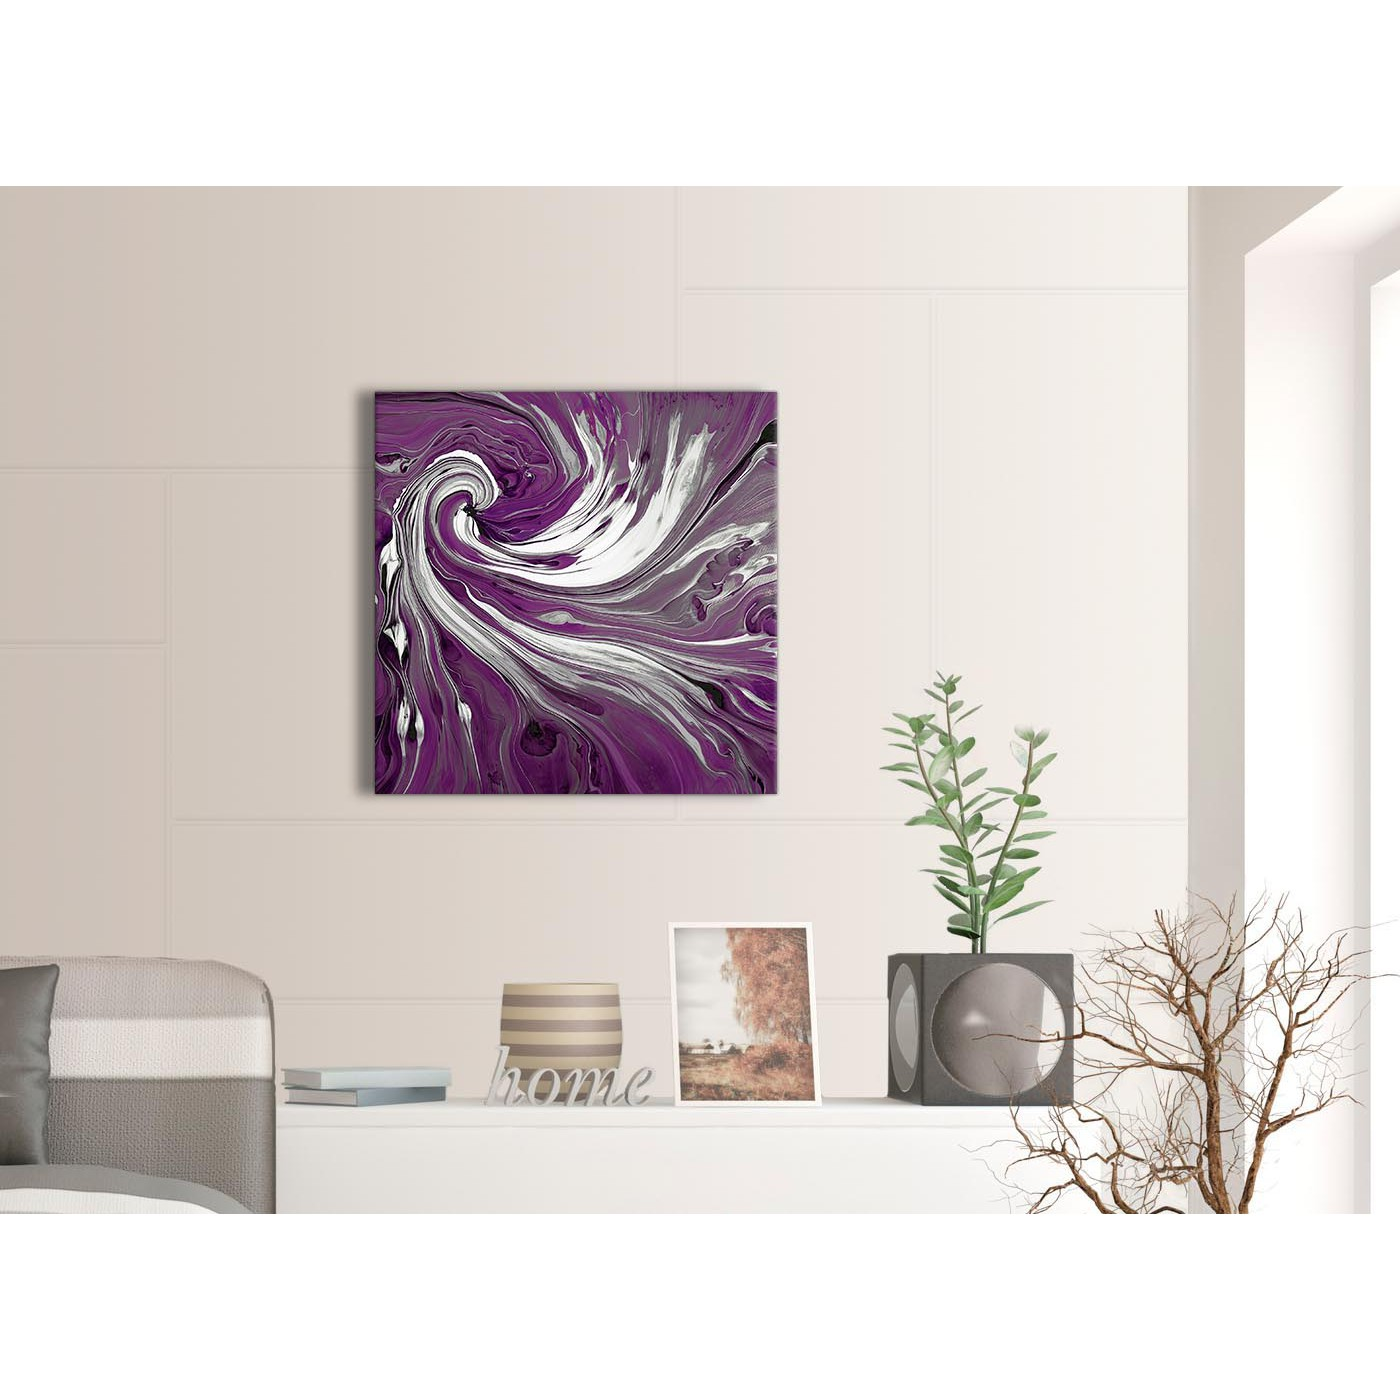 Display Gallery Item 3; Contemporary Plum Purple White Swirls Modern  Abstract Canvas Wall Art Modern 64cm Square 1S353M For Your Display Gallery  Item 4